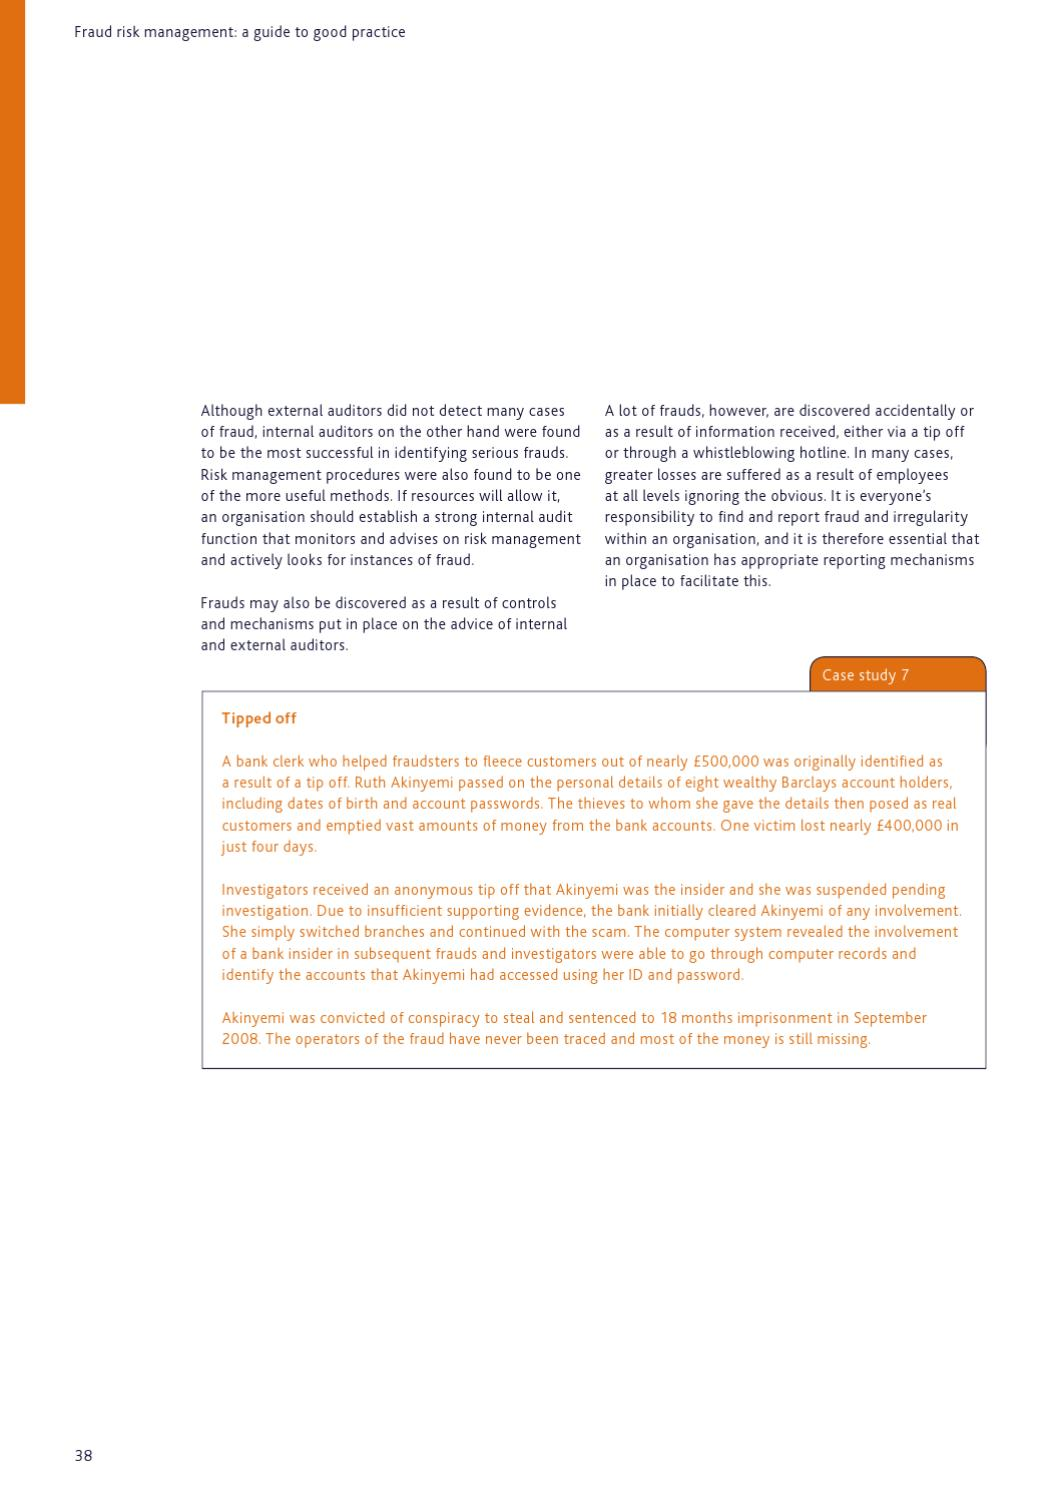 Fraud Risk Management A Guide To Good Practice By Chartered Institute Of Management Accountants Issuu